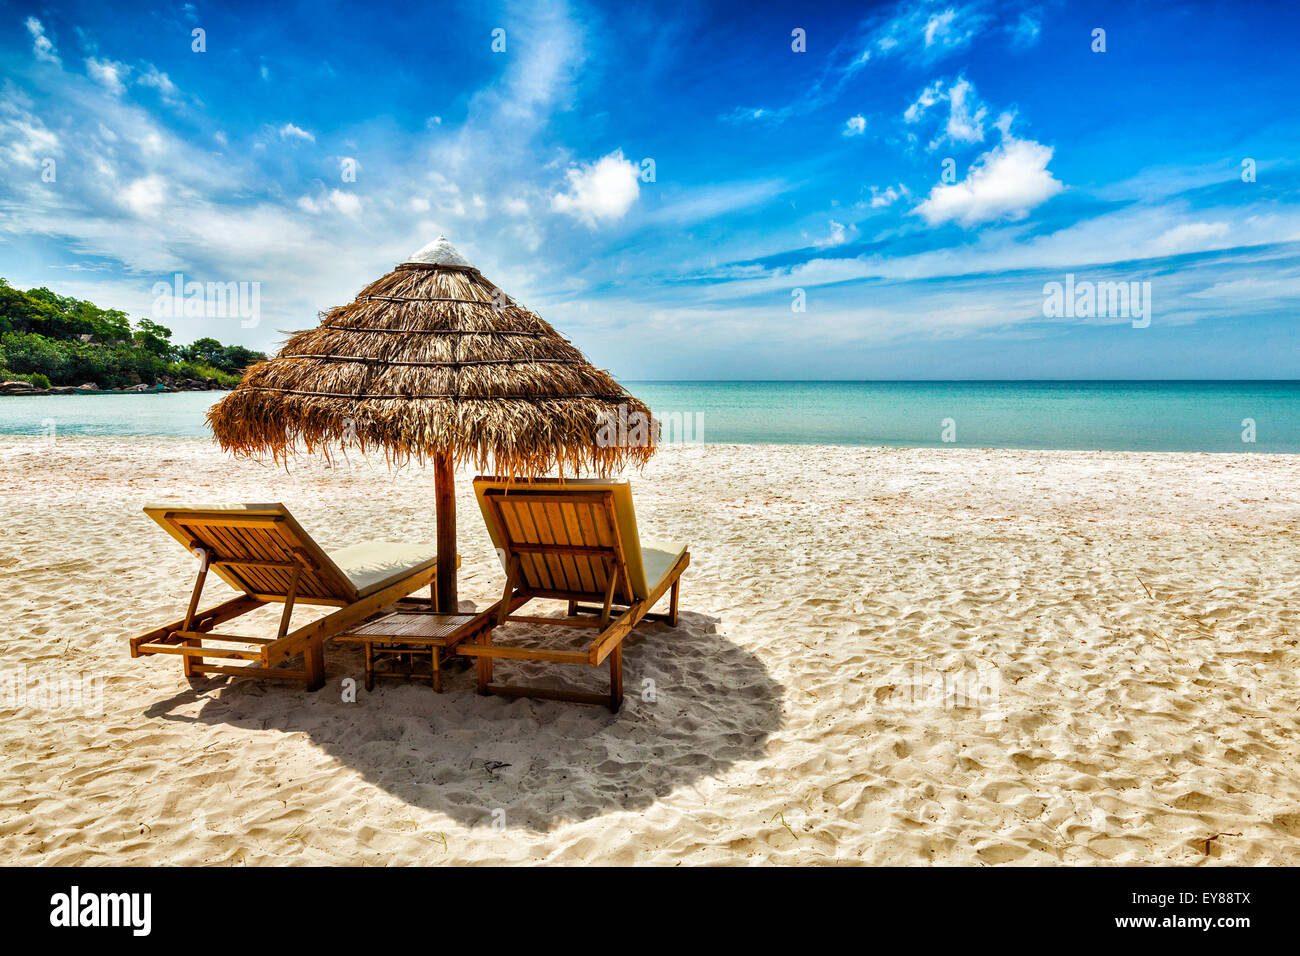 Vacation Holidays Background Wallpaper   Two Beach Lounge Chairs Under Tent  On Beach. Sihanoukville, Cambodia